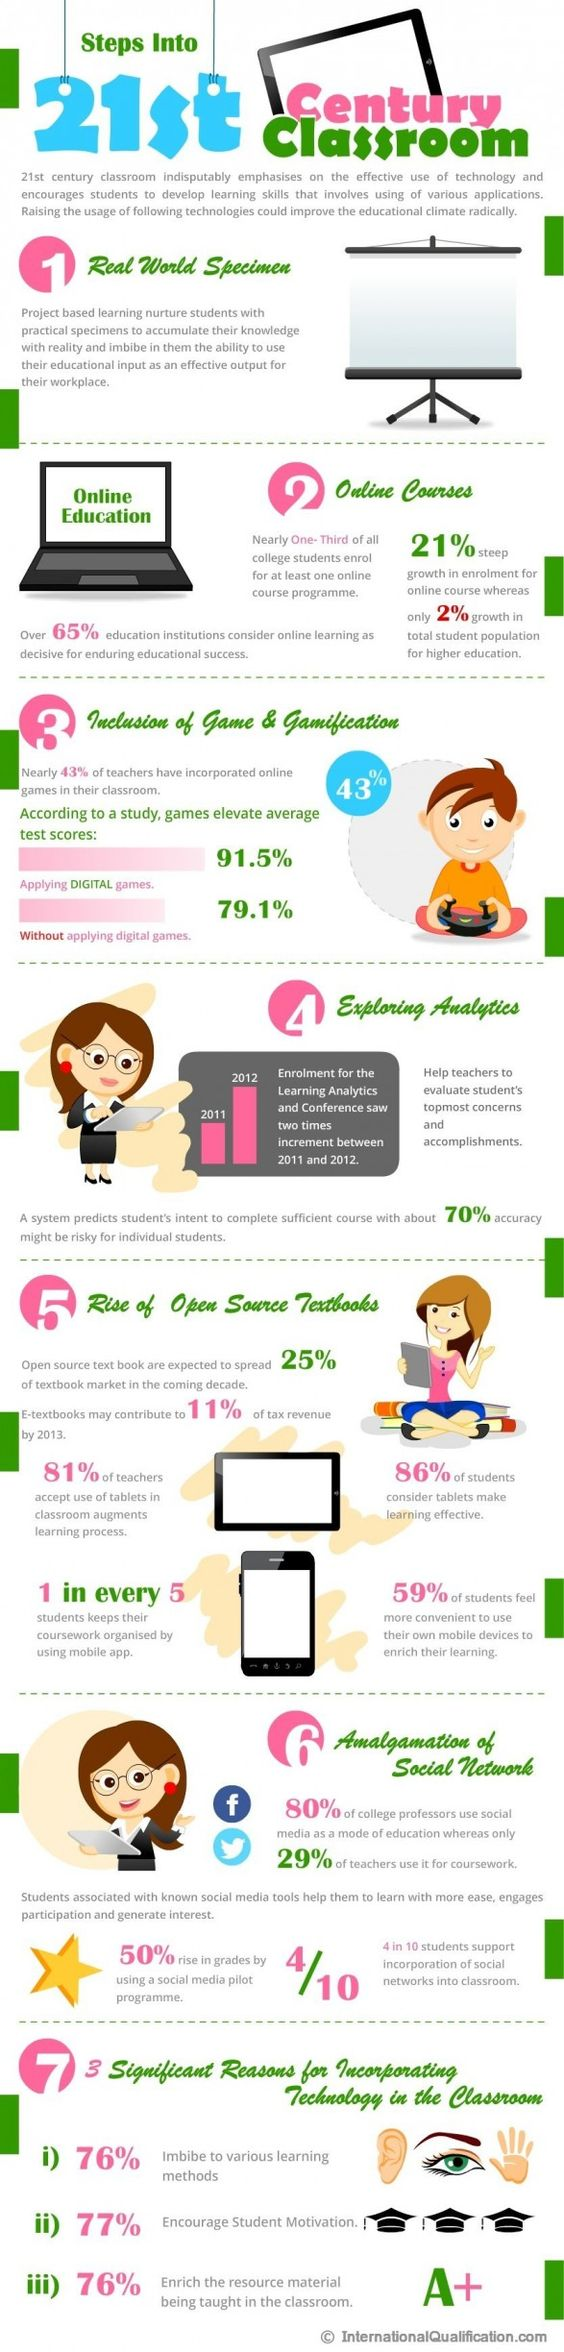 Stepping into a 21st Century Classroom Infographic   e-Learning Infographics